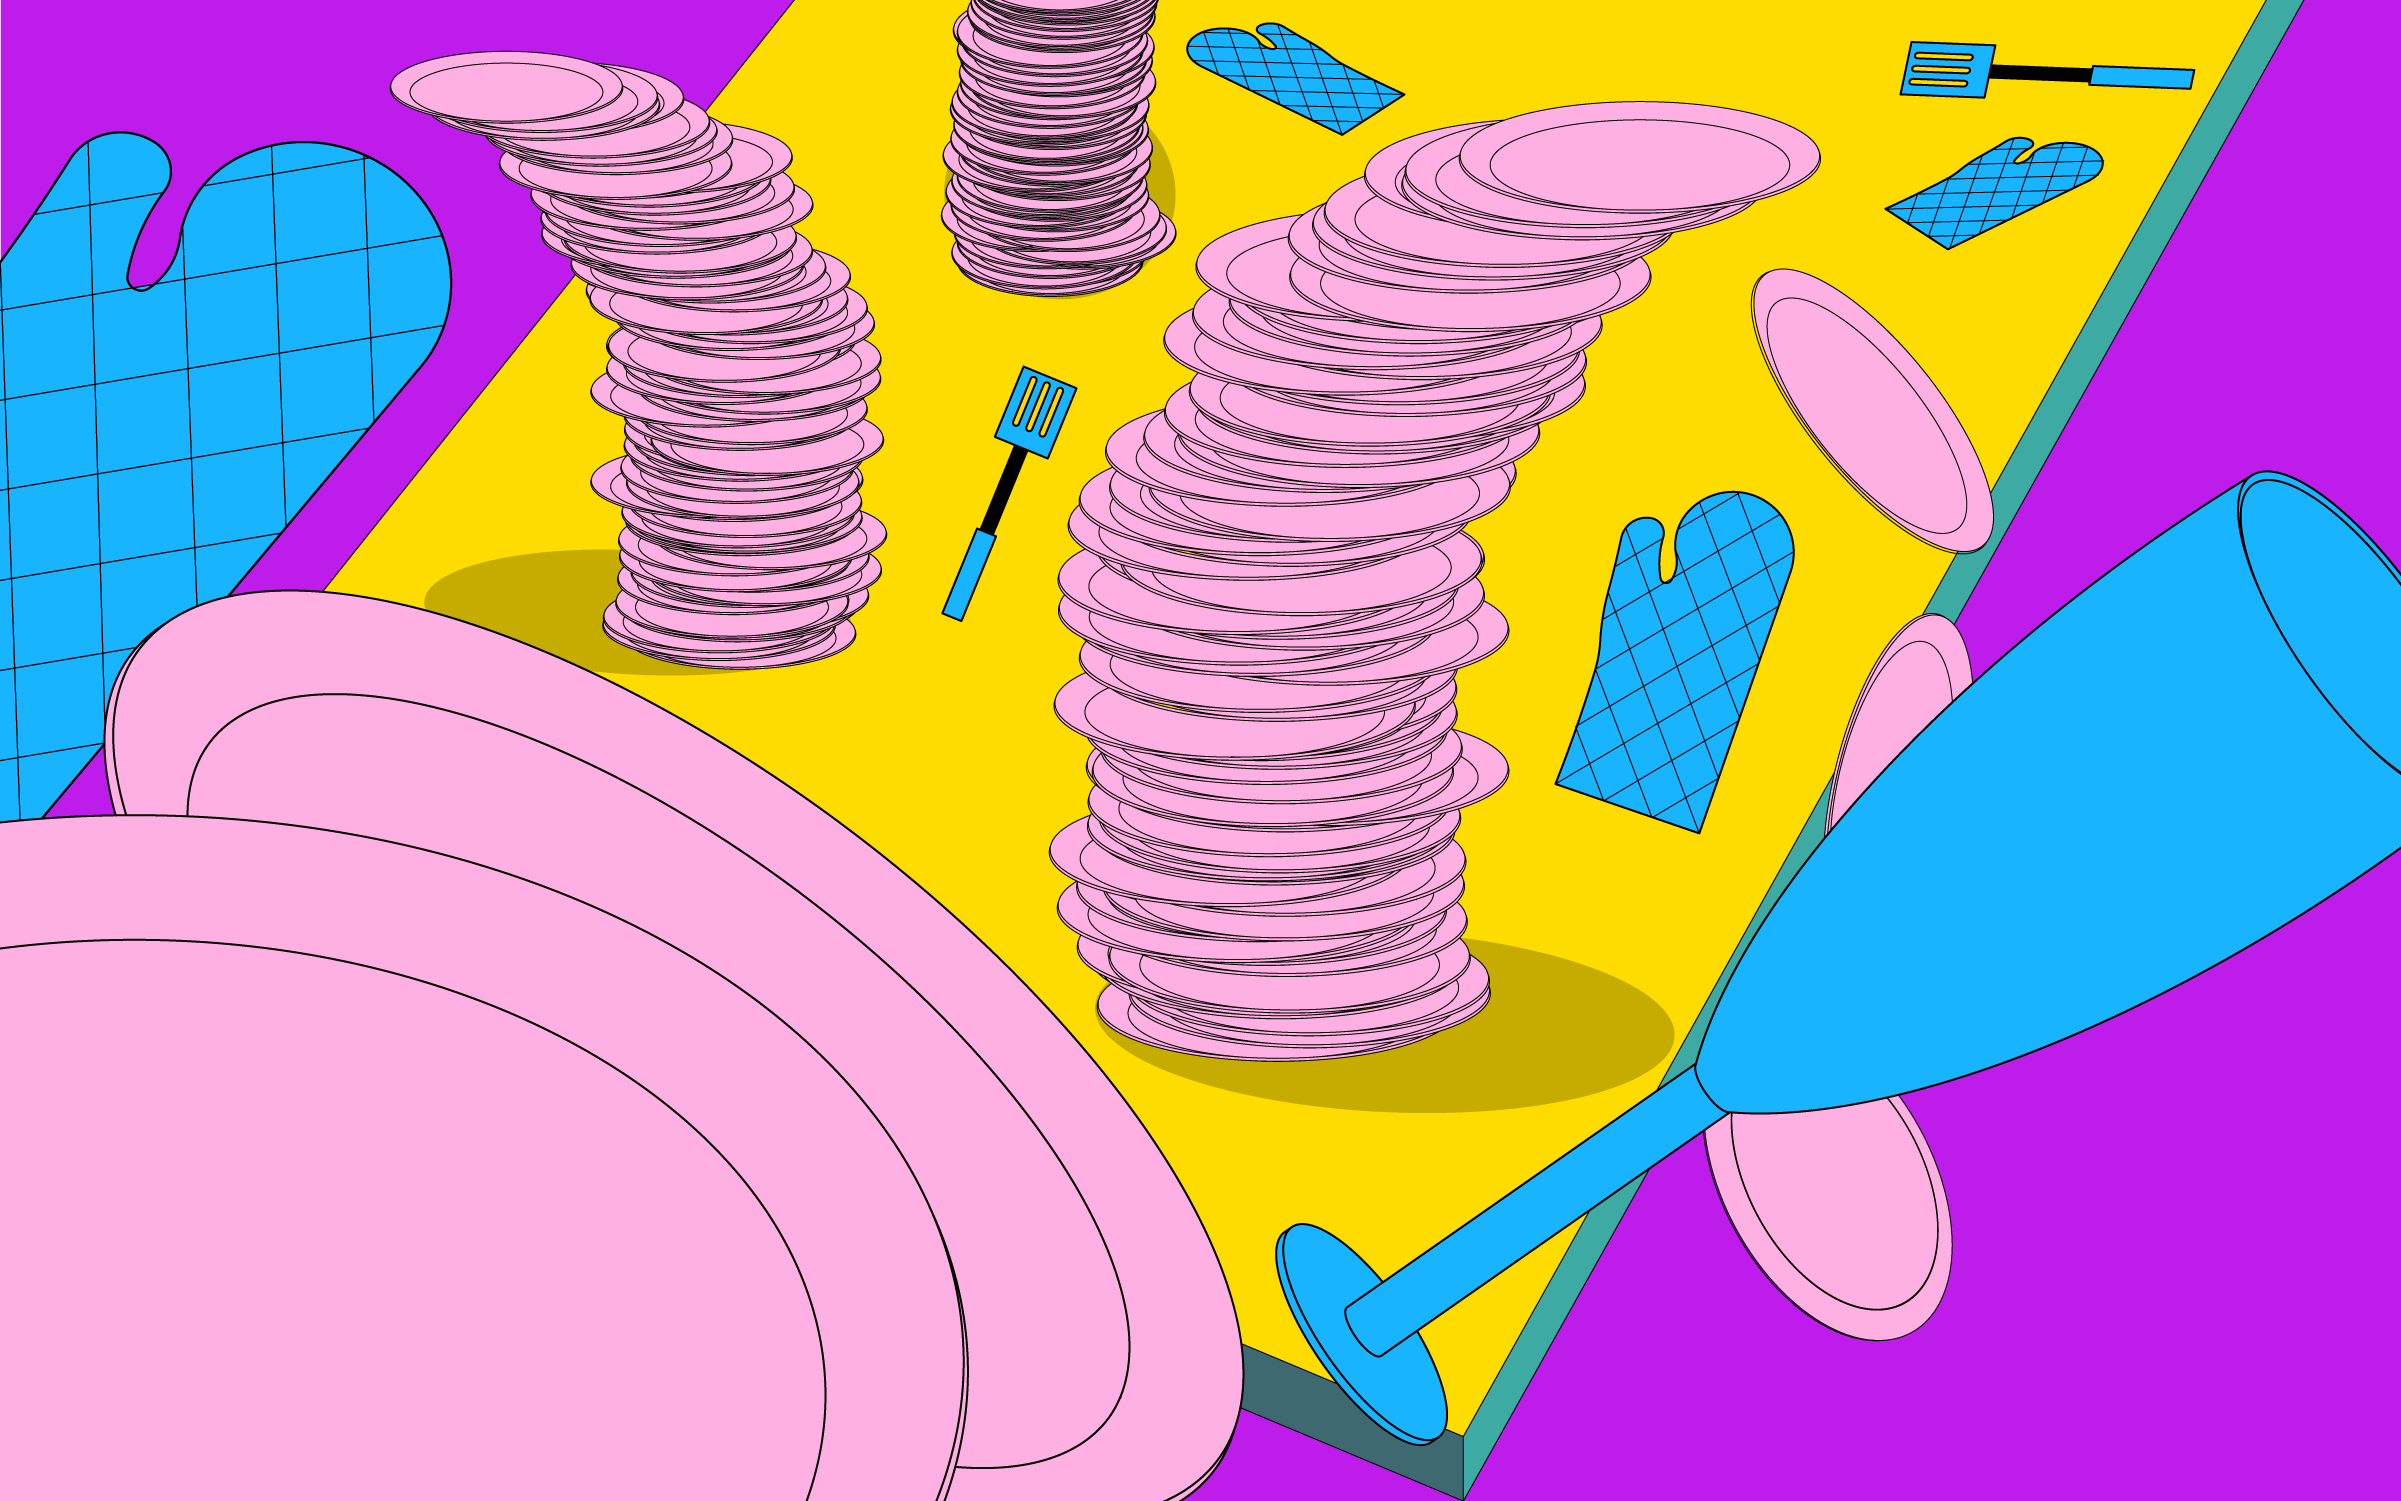 An illustration of wine glasses, spatulas, oven mitts, and several stacks of plates all falling over.